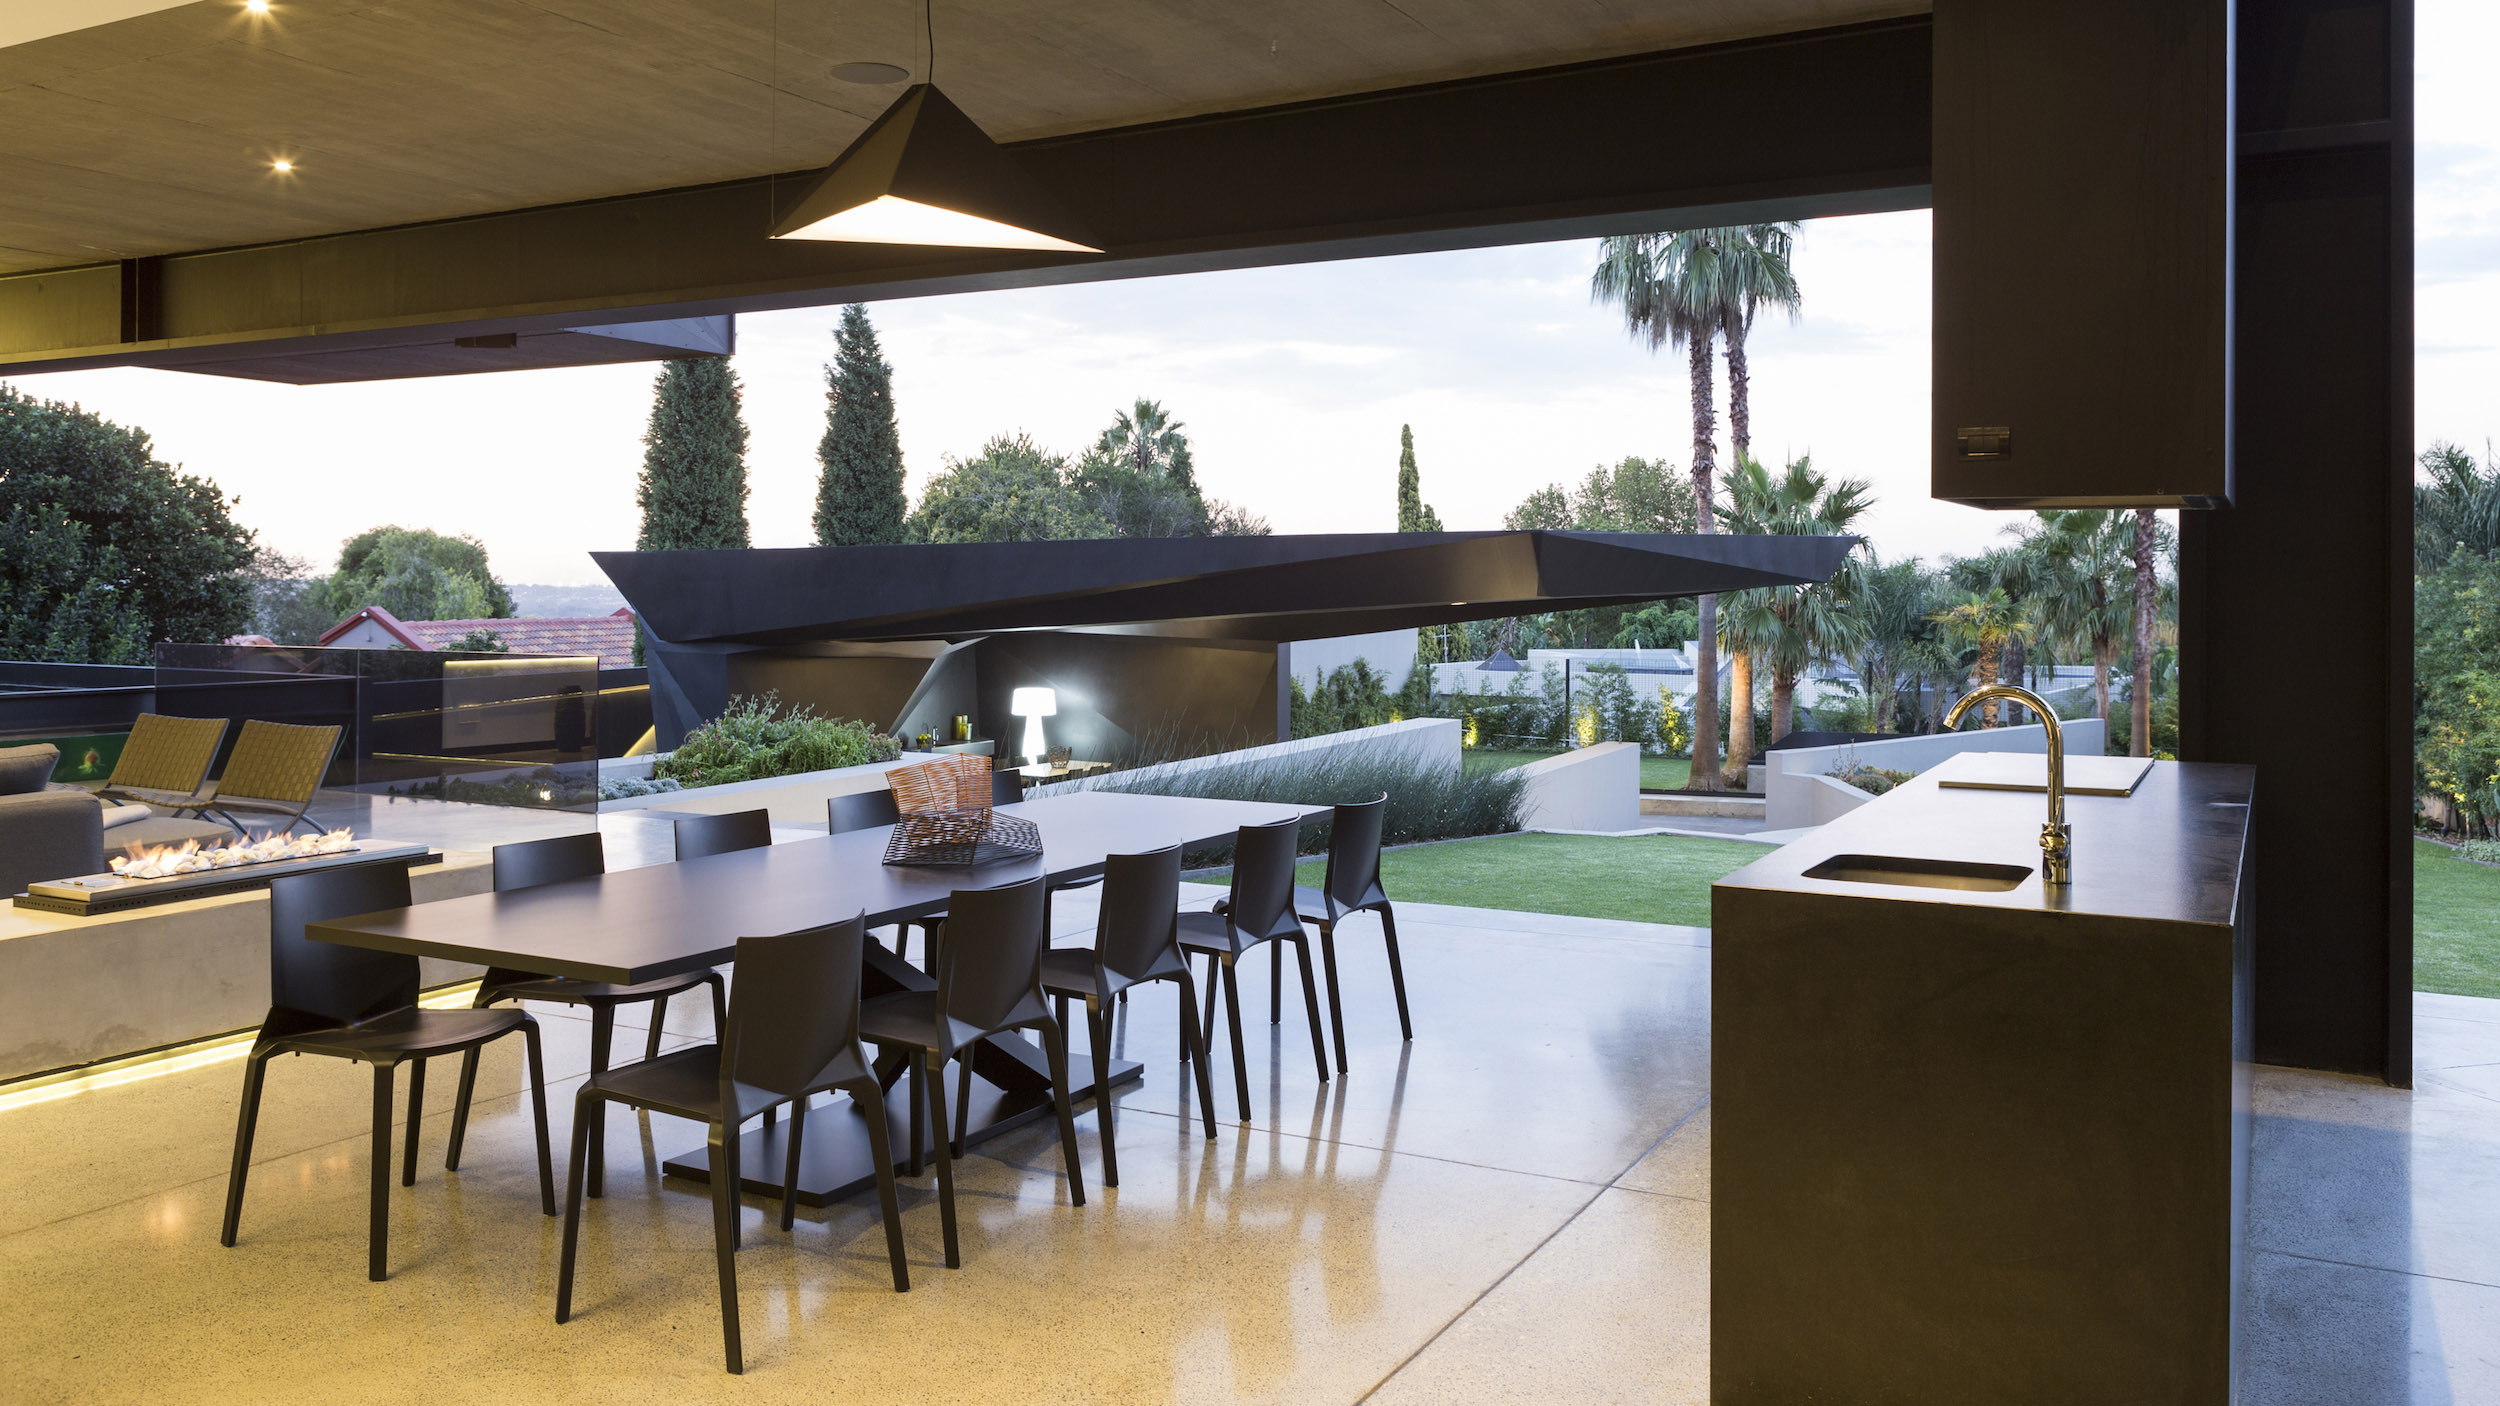 Kloof Road Masterpiece House in Johannesburg by Nico van der Meulen Architects-22